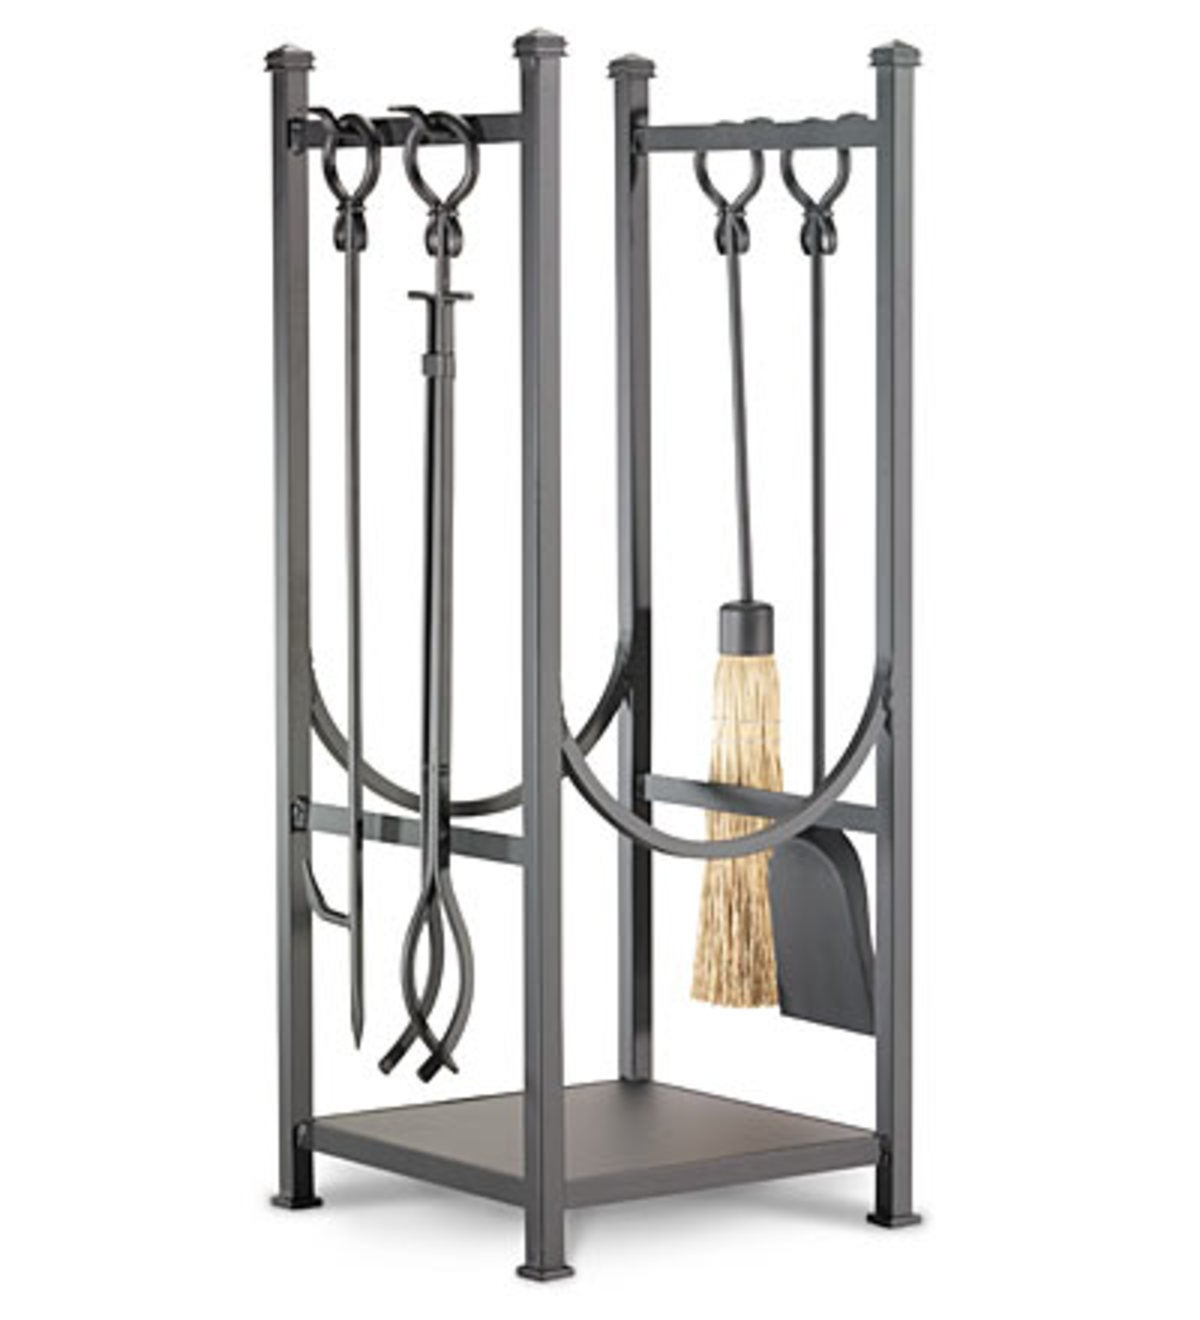 Kindling Rack With Fireplace Tools - Black